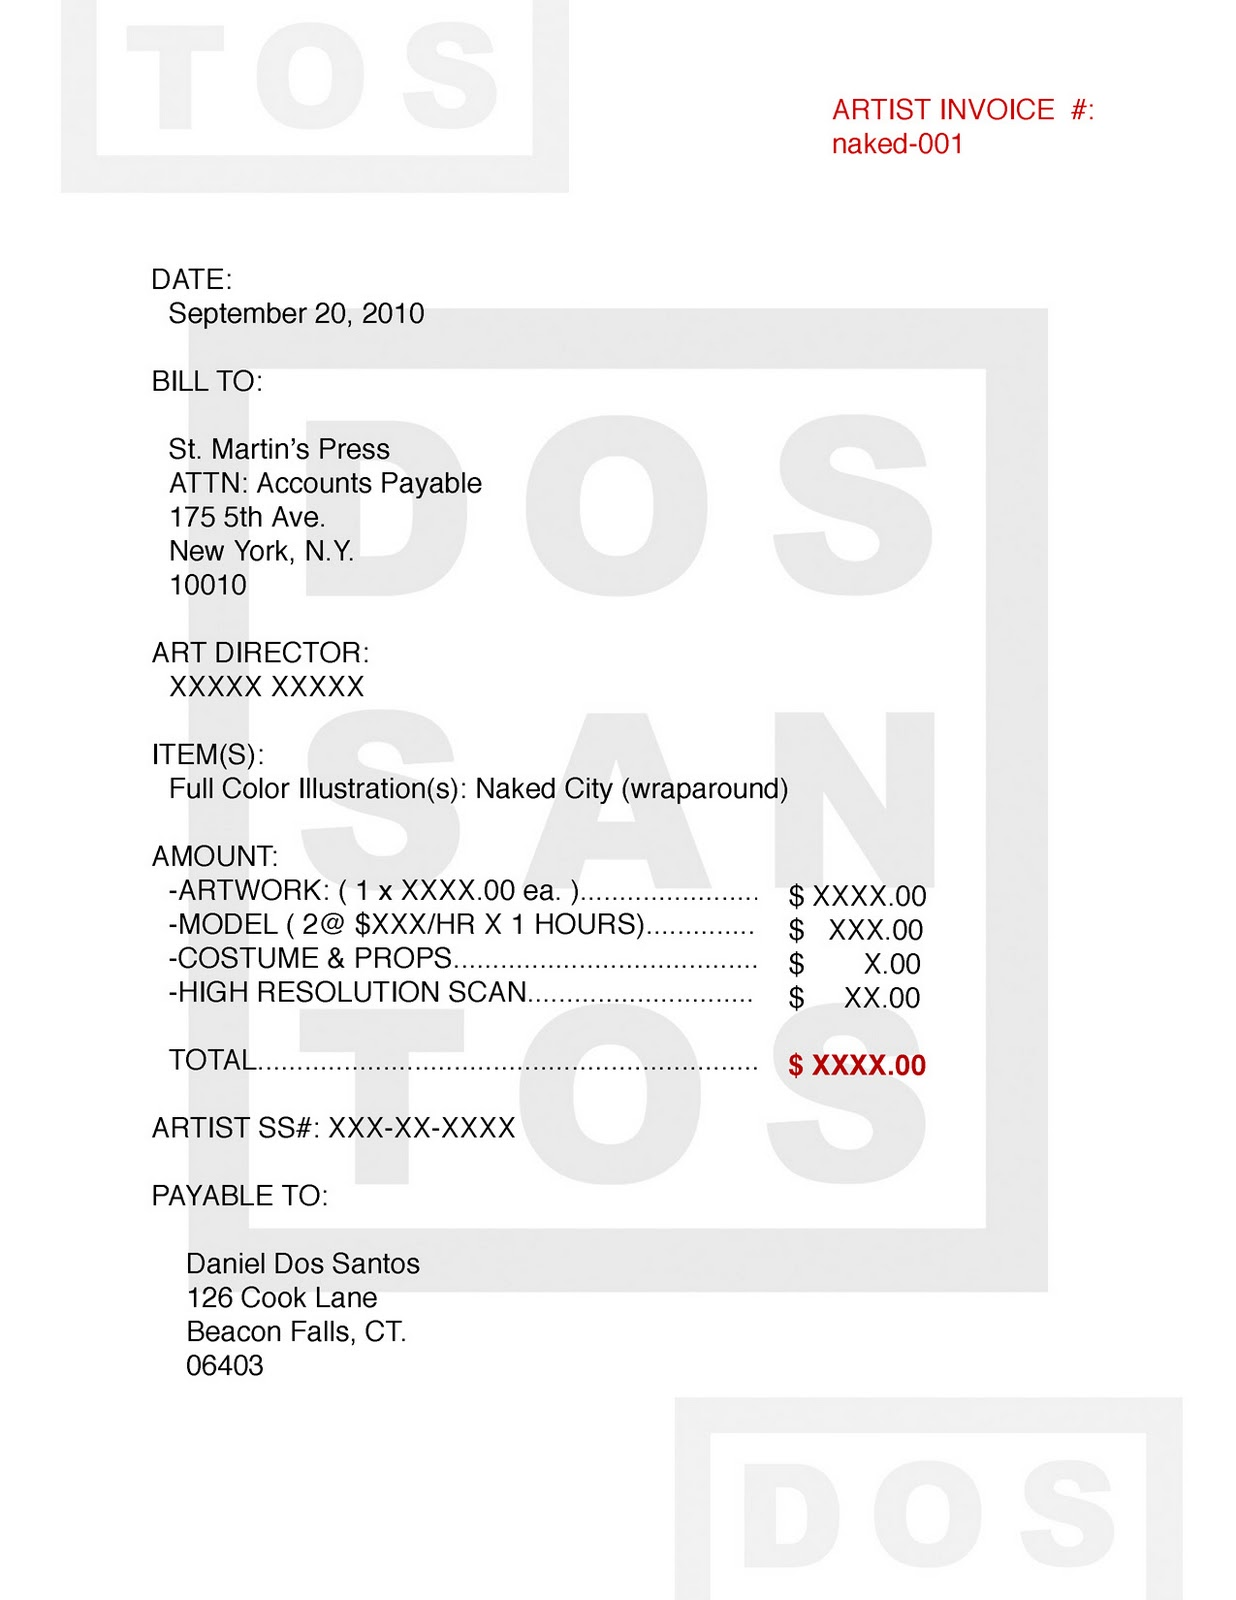 Centralasianshepherdus  Surprising Muddy Colors Invoices With Exquisite I Believe That This Format Contains All The Pertinent Information That A Good Invoice Should Have And Can Serve As A Decent Template For Your Own With Appealing Website Invoice Sample Also Invoicing As A Sole Trader In Addition Template For Invoice In Excel And Uk Invoice Template Word As Well As Program To Make Invoices Additionally Simple Billing Invoice From Muddycolorsblogspotcom With Centralasianshepherdus  Exquisite Muddy Colors Invoices With Appealing I Believe That This Format Contains All The Pertinent Information That A Good Invoice Should Have And Can Serve As A Decent Template For Your Own And Surprising Website Invoice Sample Also Invoicing As A Sole Trader In Addition Template For Invoice In Excel From Muddycolorsblogspotcom